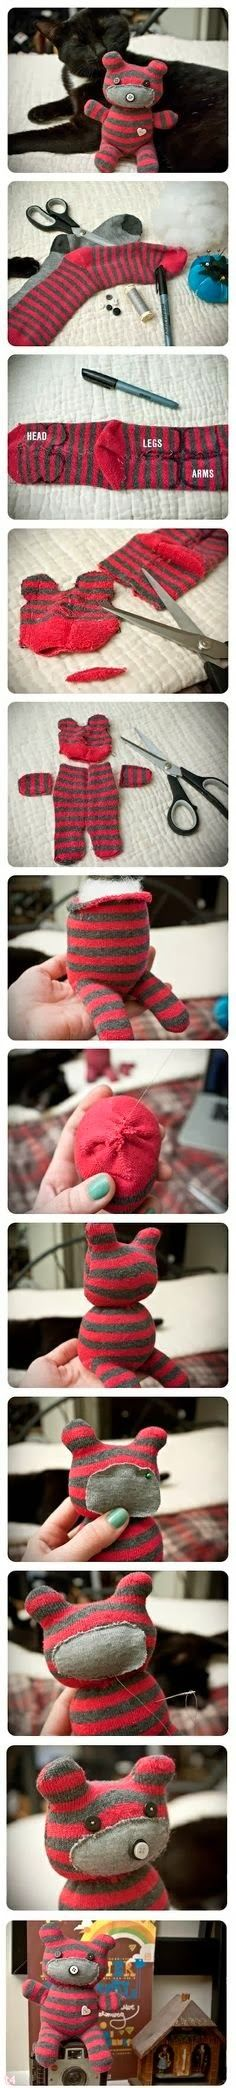 DIY Handmade & Craft Ideas 2014